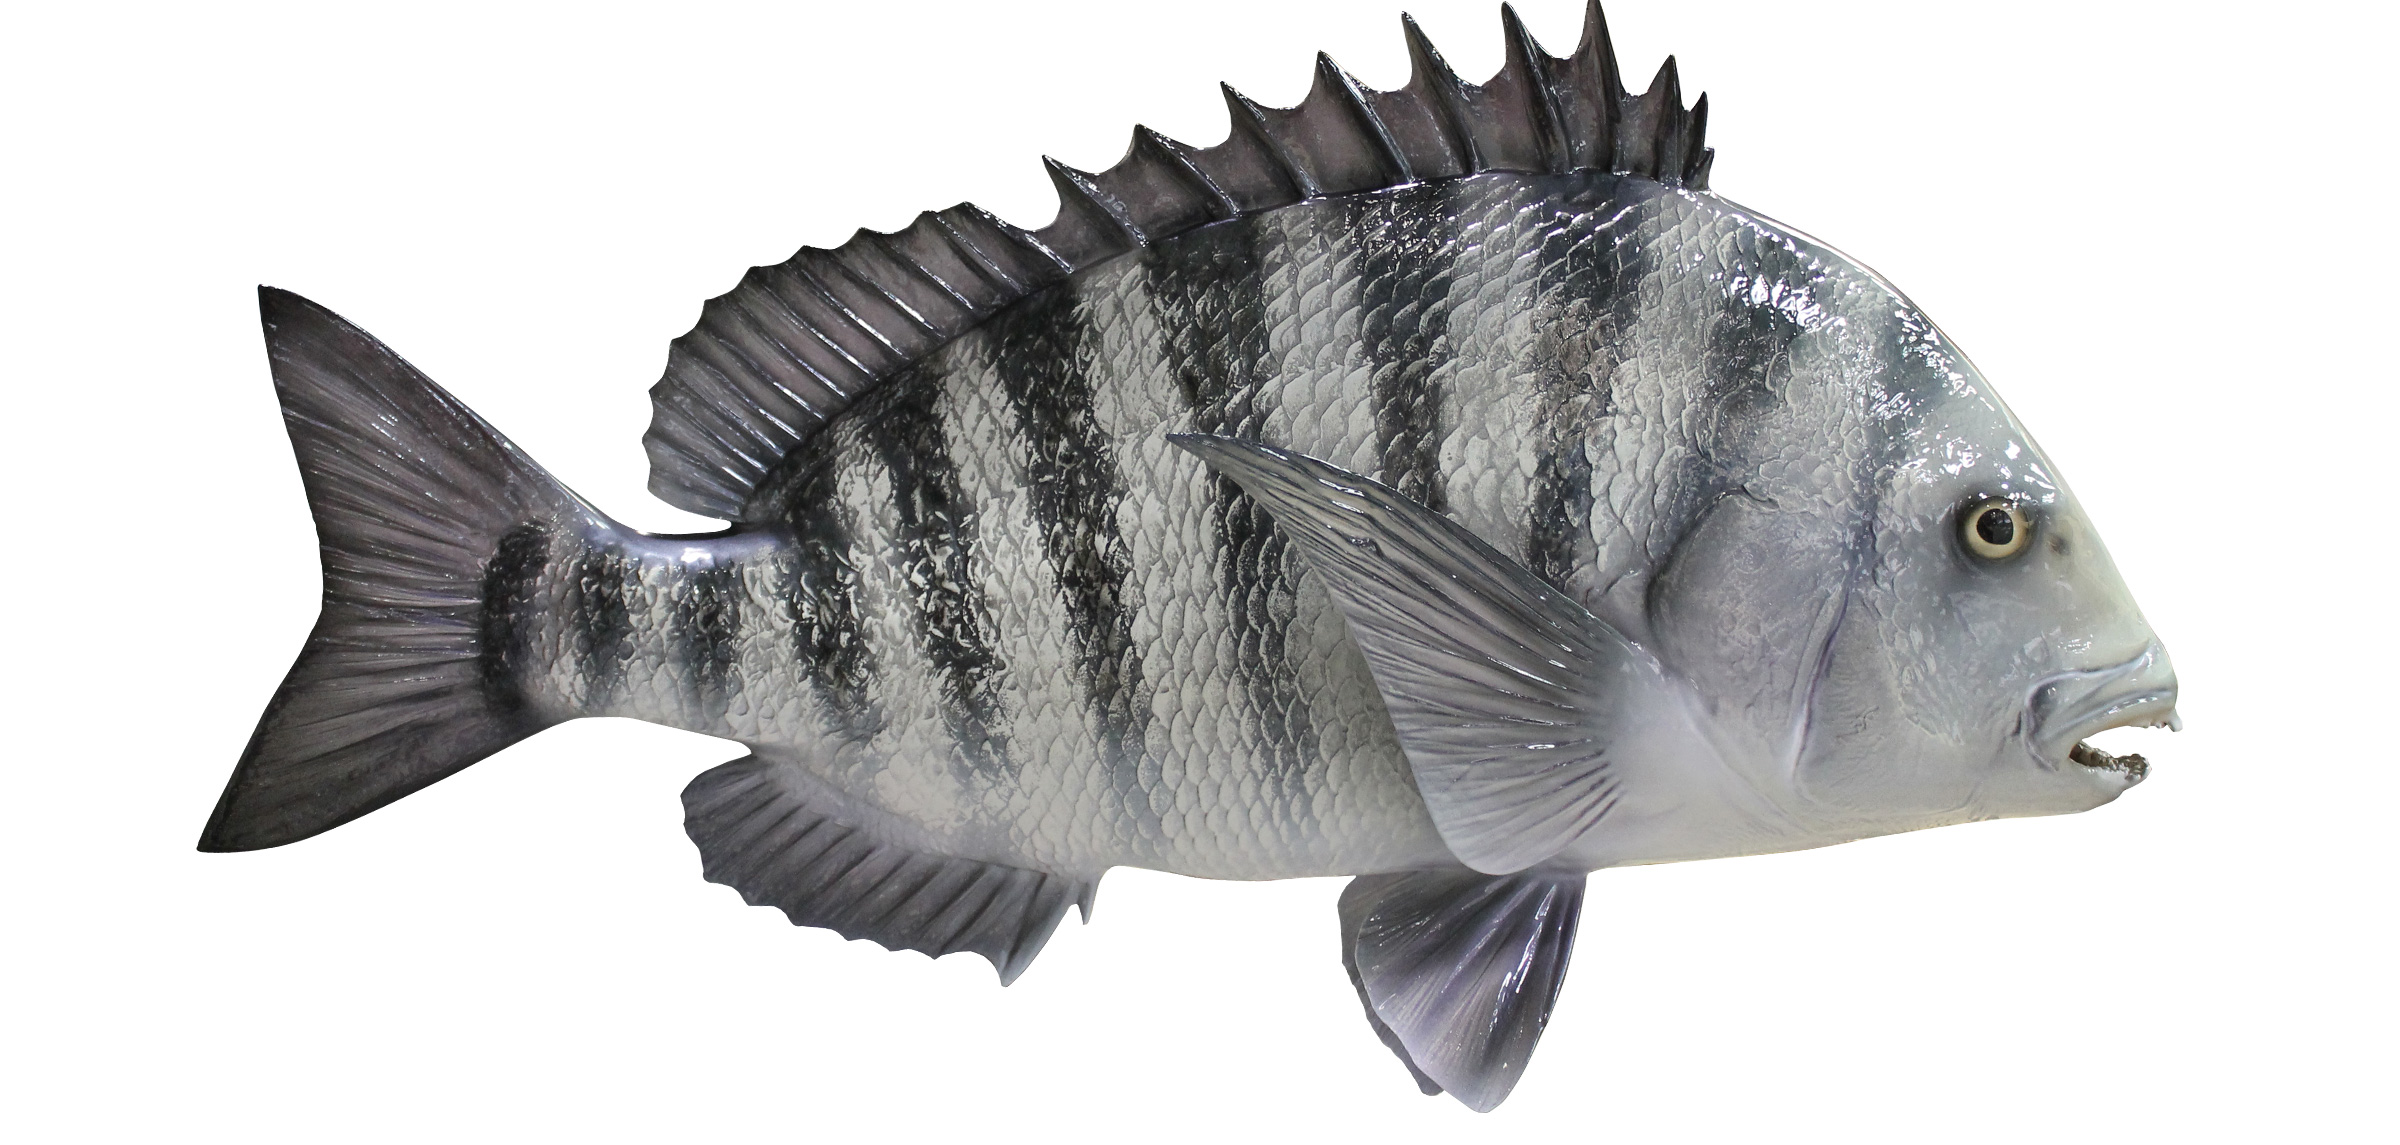 Spoilers this sub in a nutshell undertale for Sheepshead fish eating